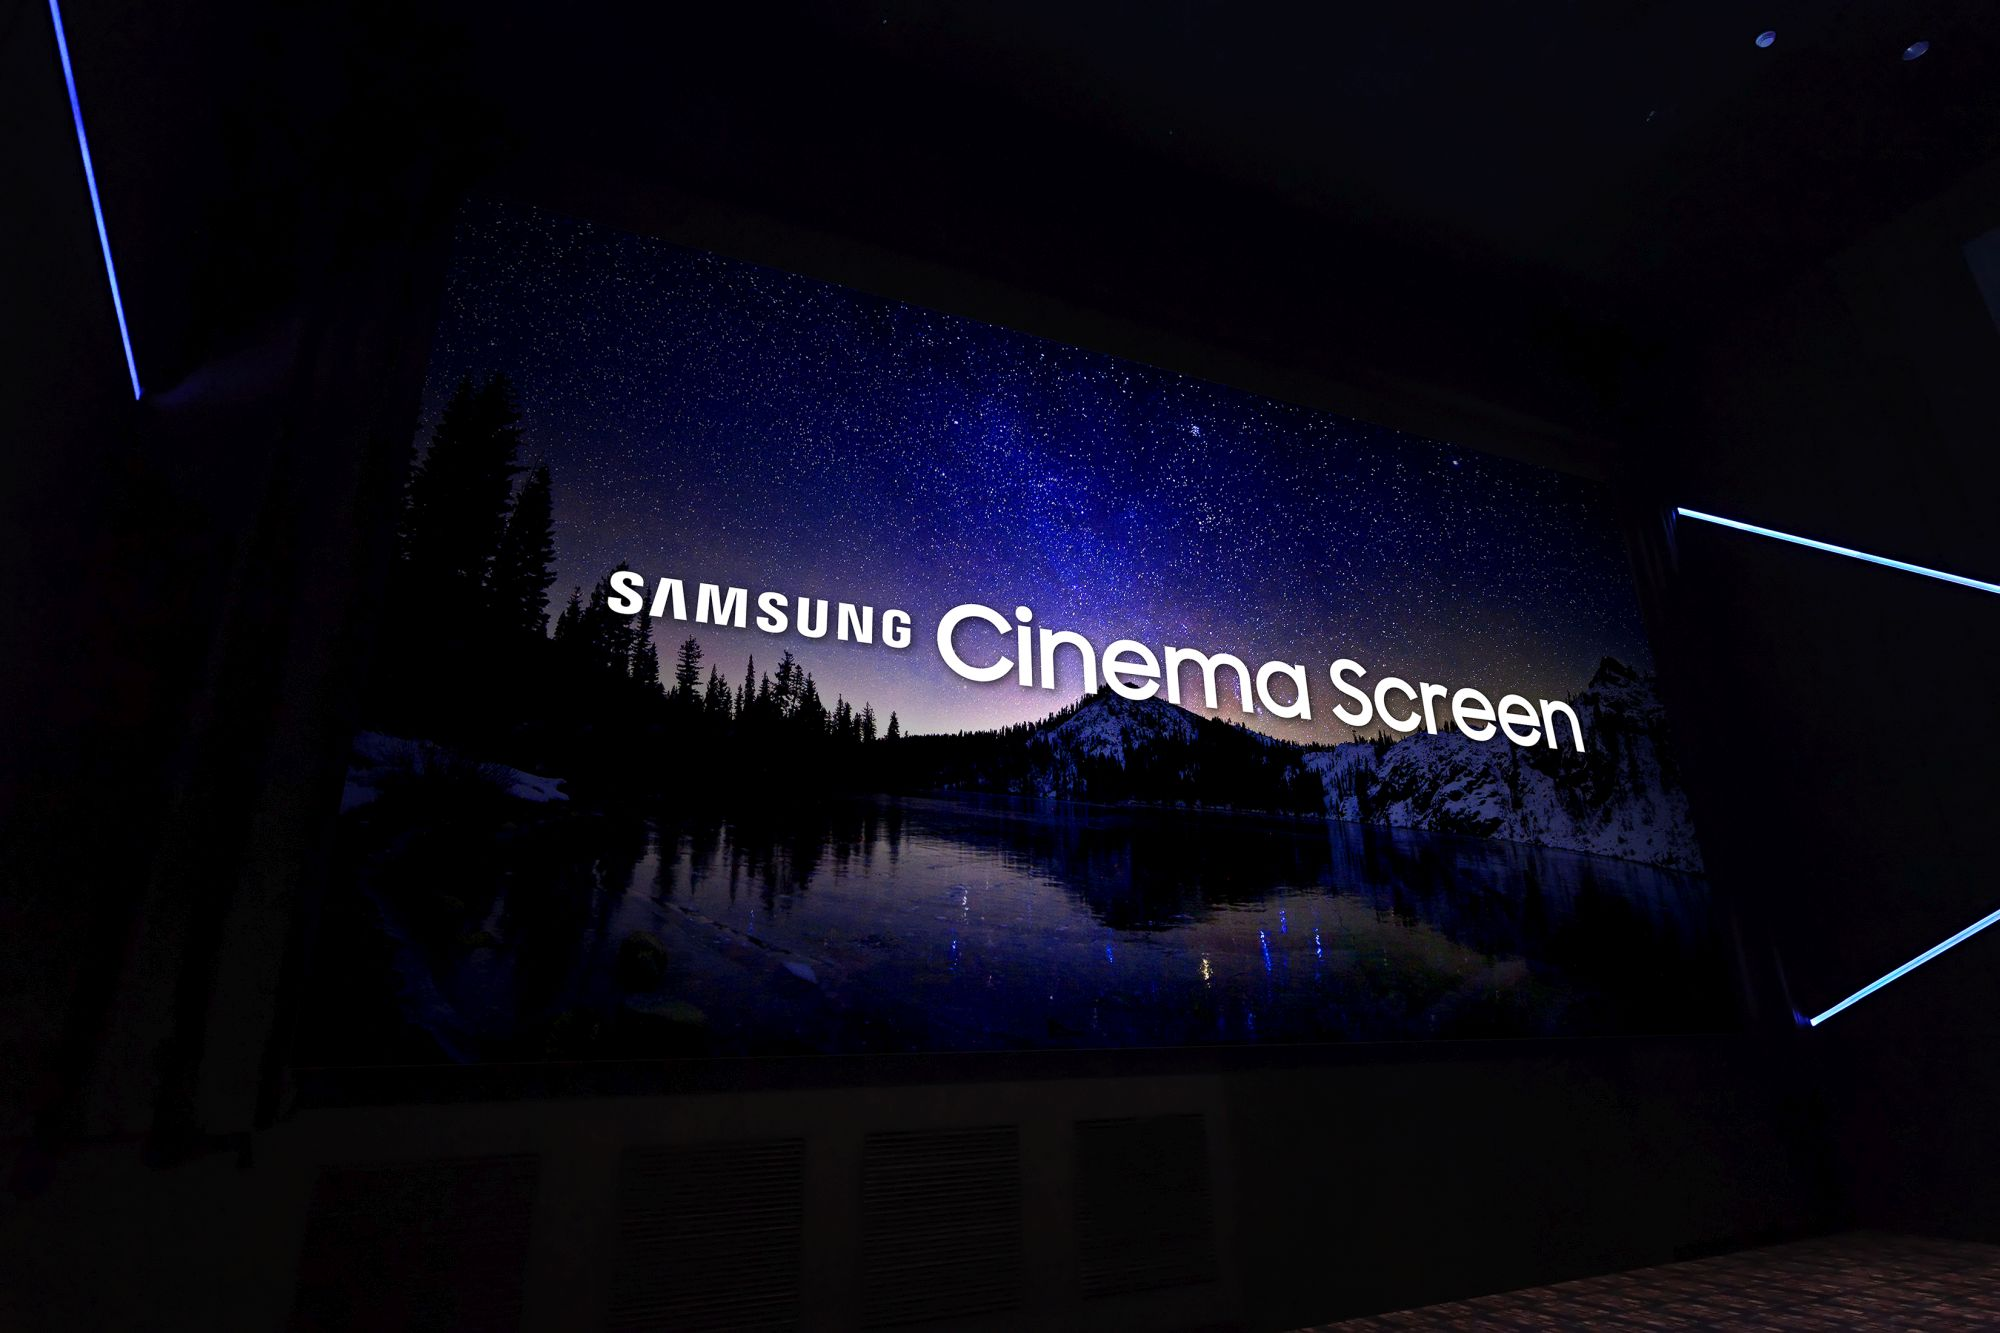 Cinema-LED-Screen-Photo-for-Global-Press-Release-1